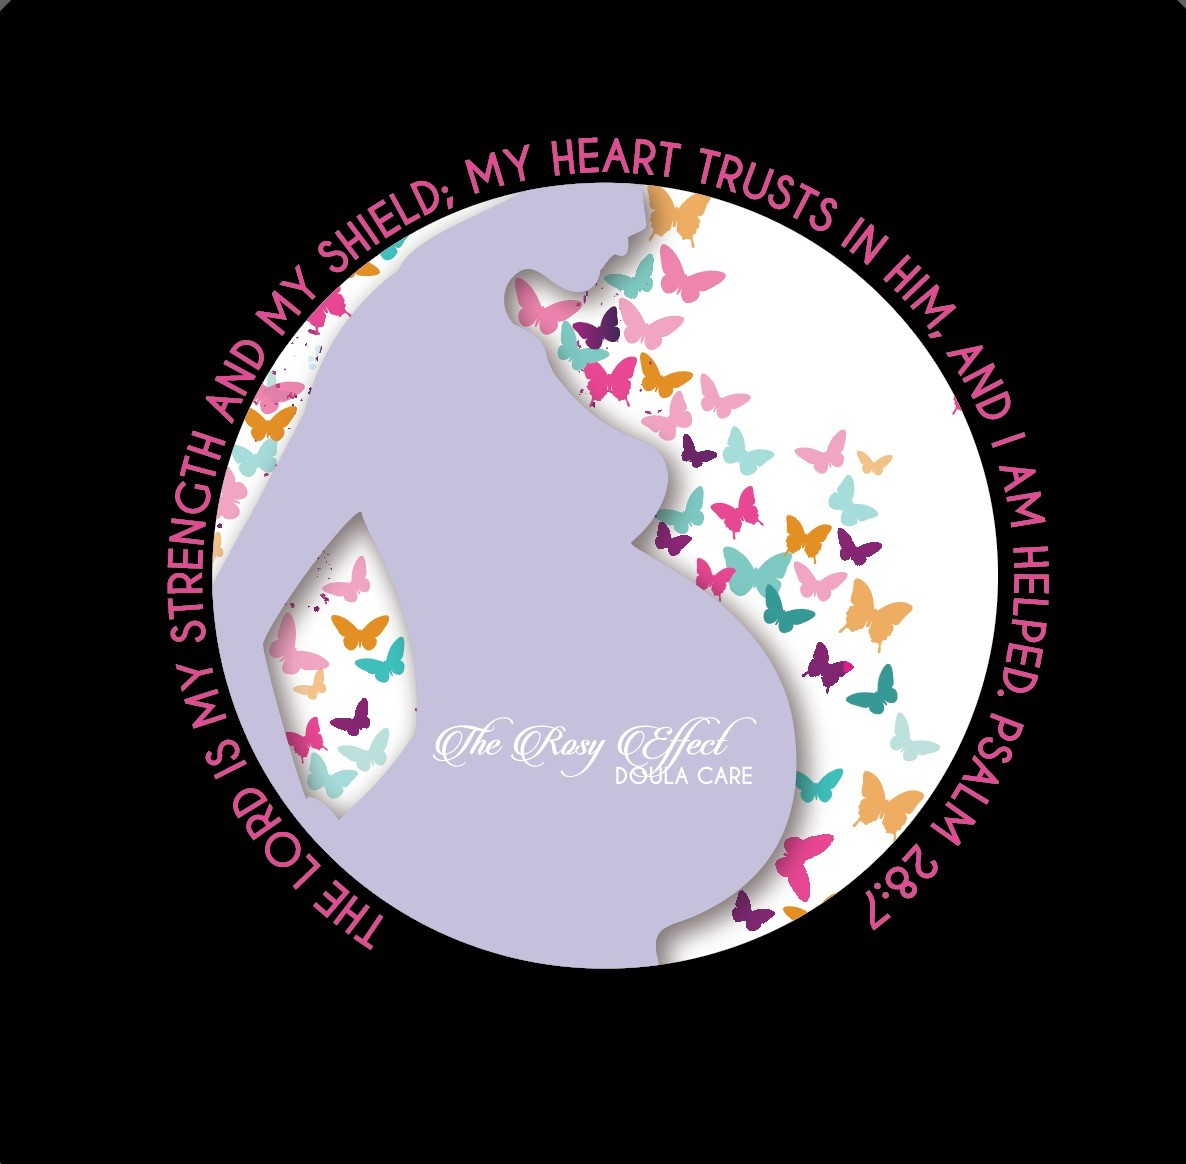 The Rosy Effect. Doula Care